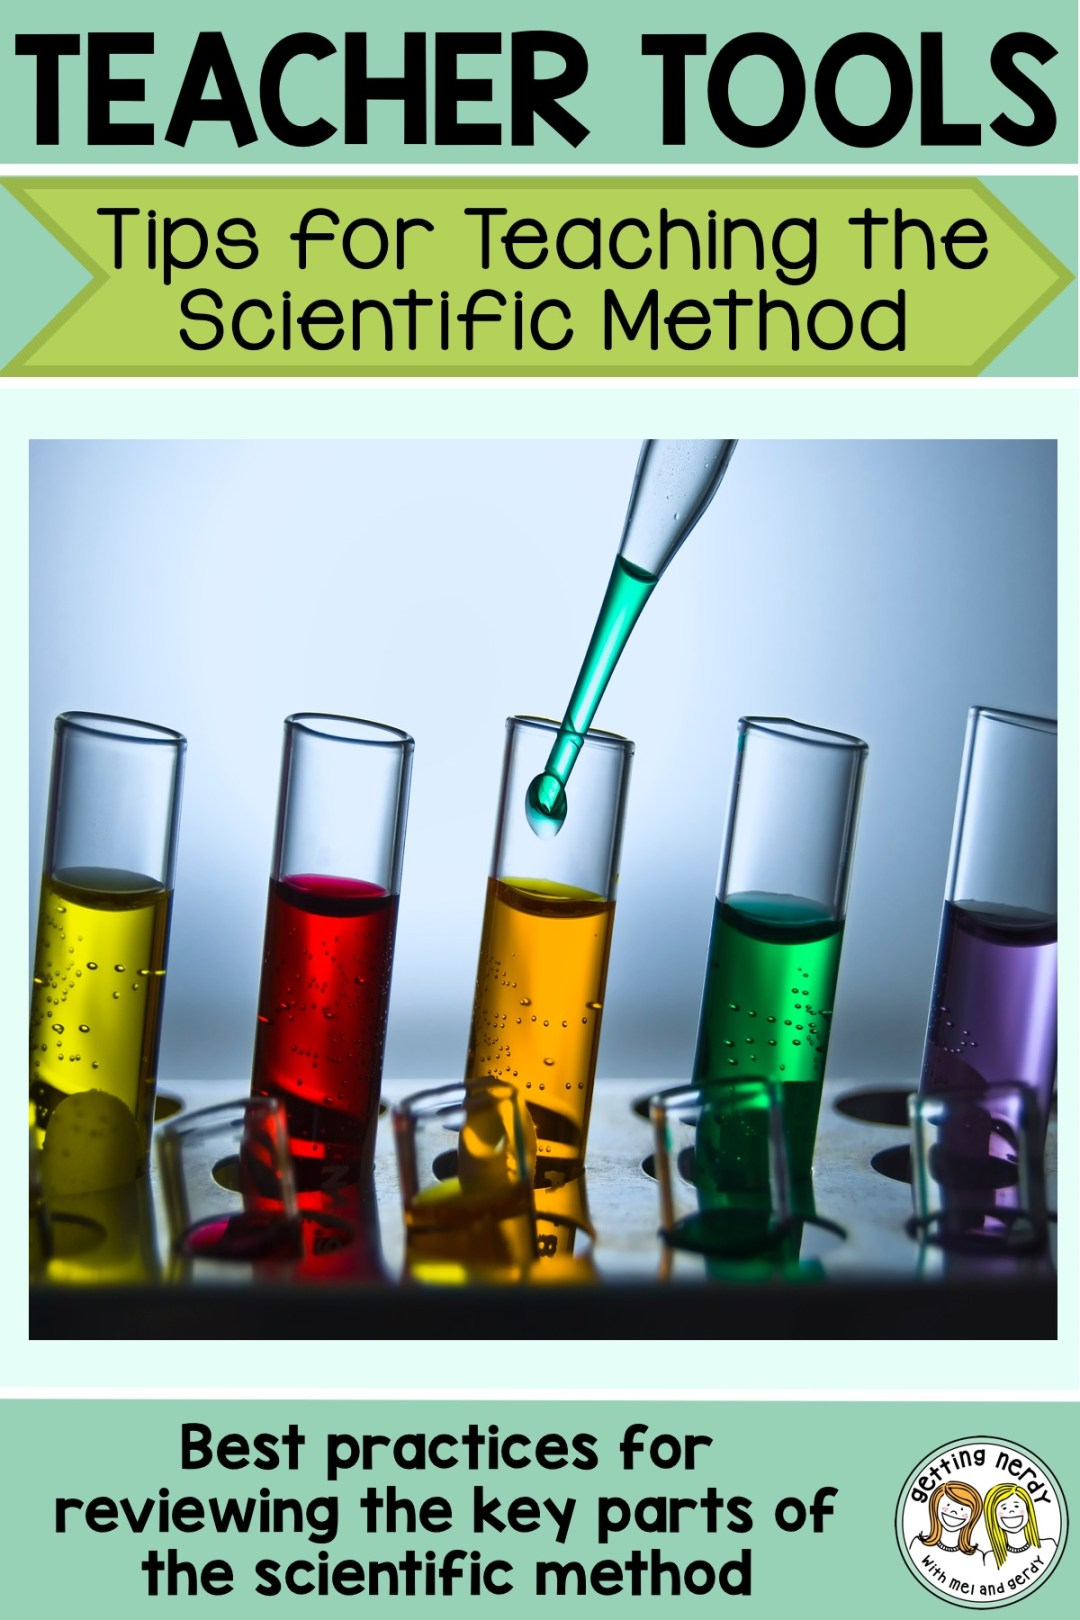 Here are some great tips for reviewing the scientific method any time of year and keep your students thinking about scientific inquiry every day of your class! #gettingnerdyscience #scientificmethod